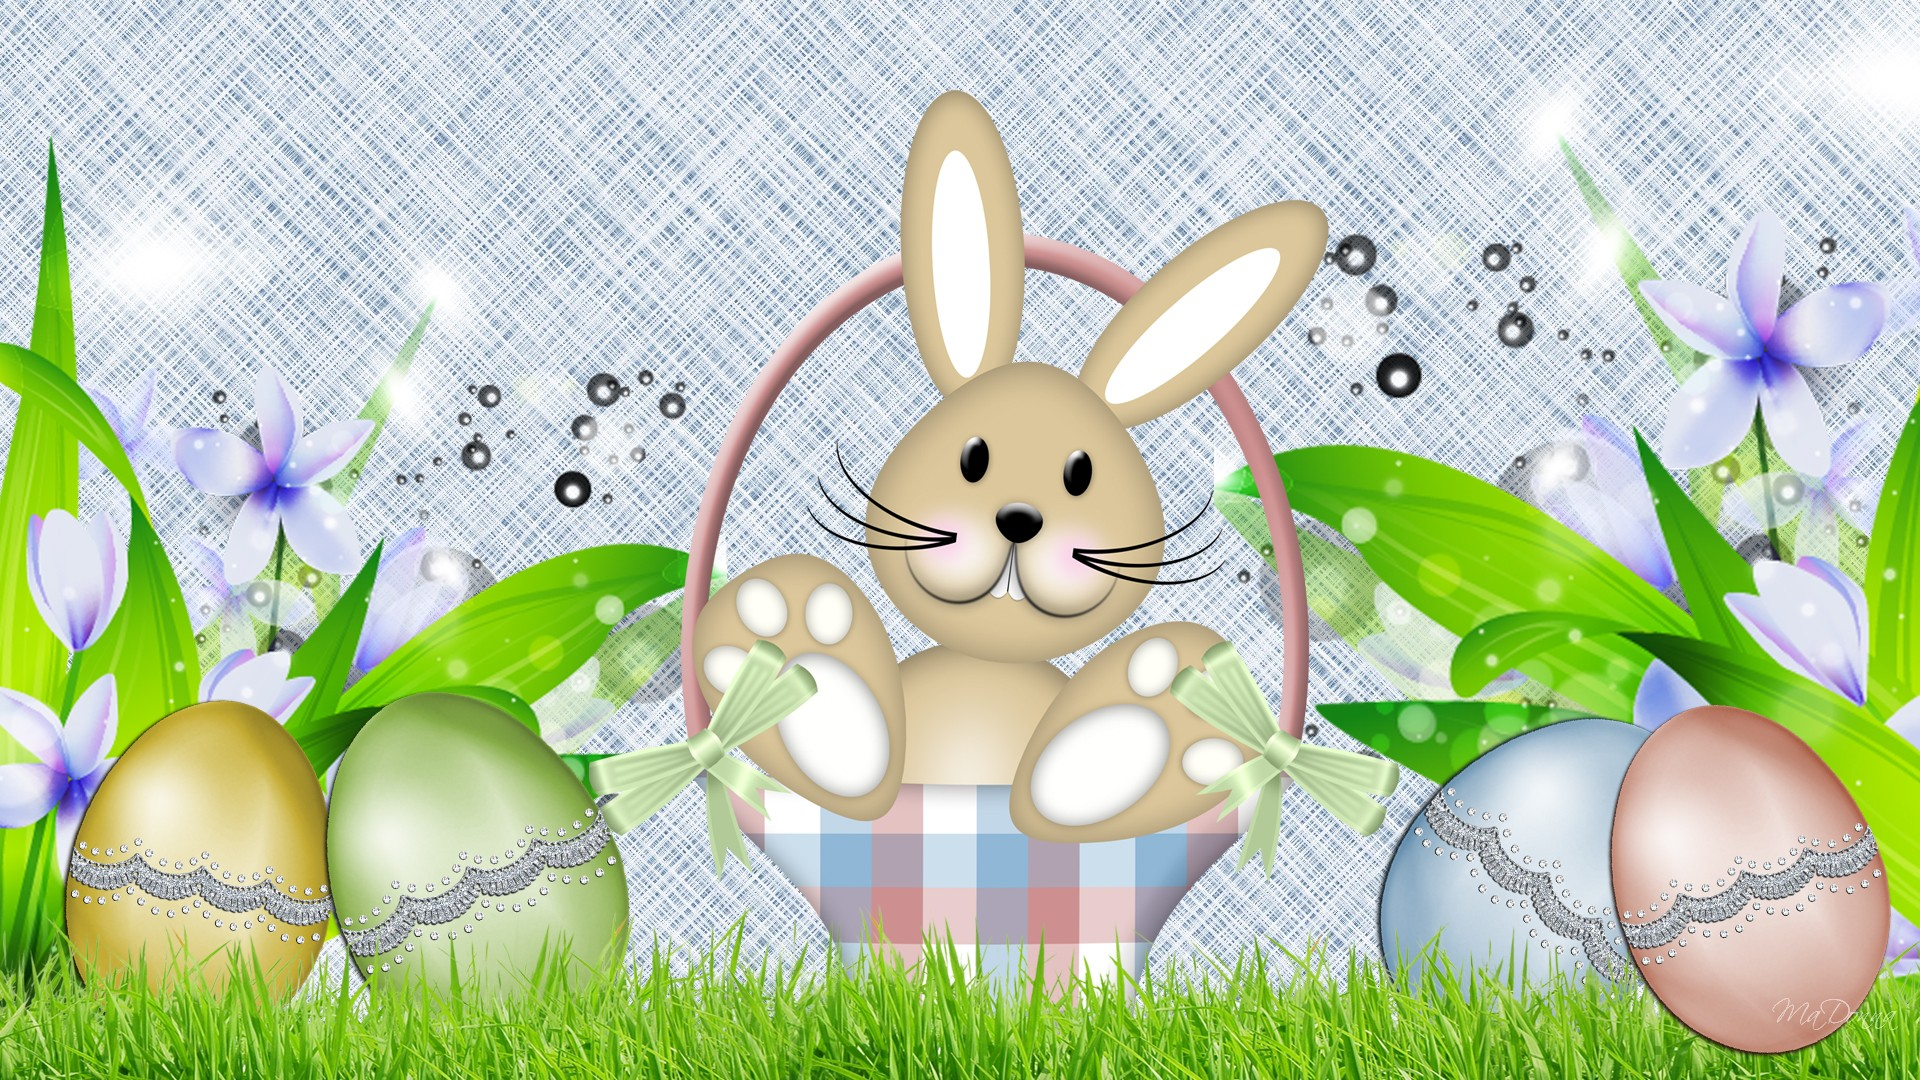 Happy Easter Background   Wallpaper High Definition High Quality 1920x1080